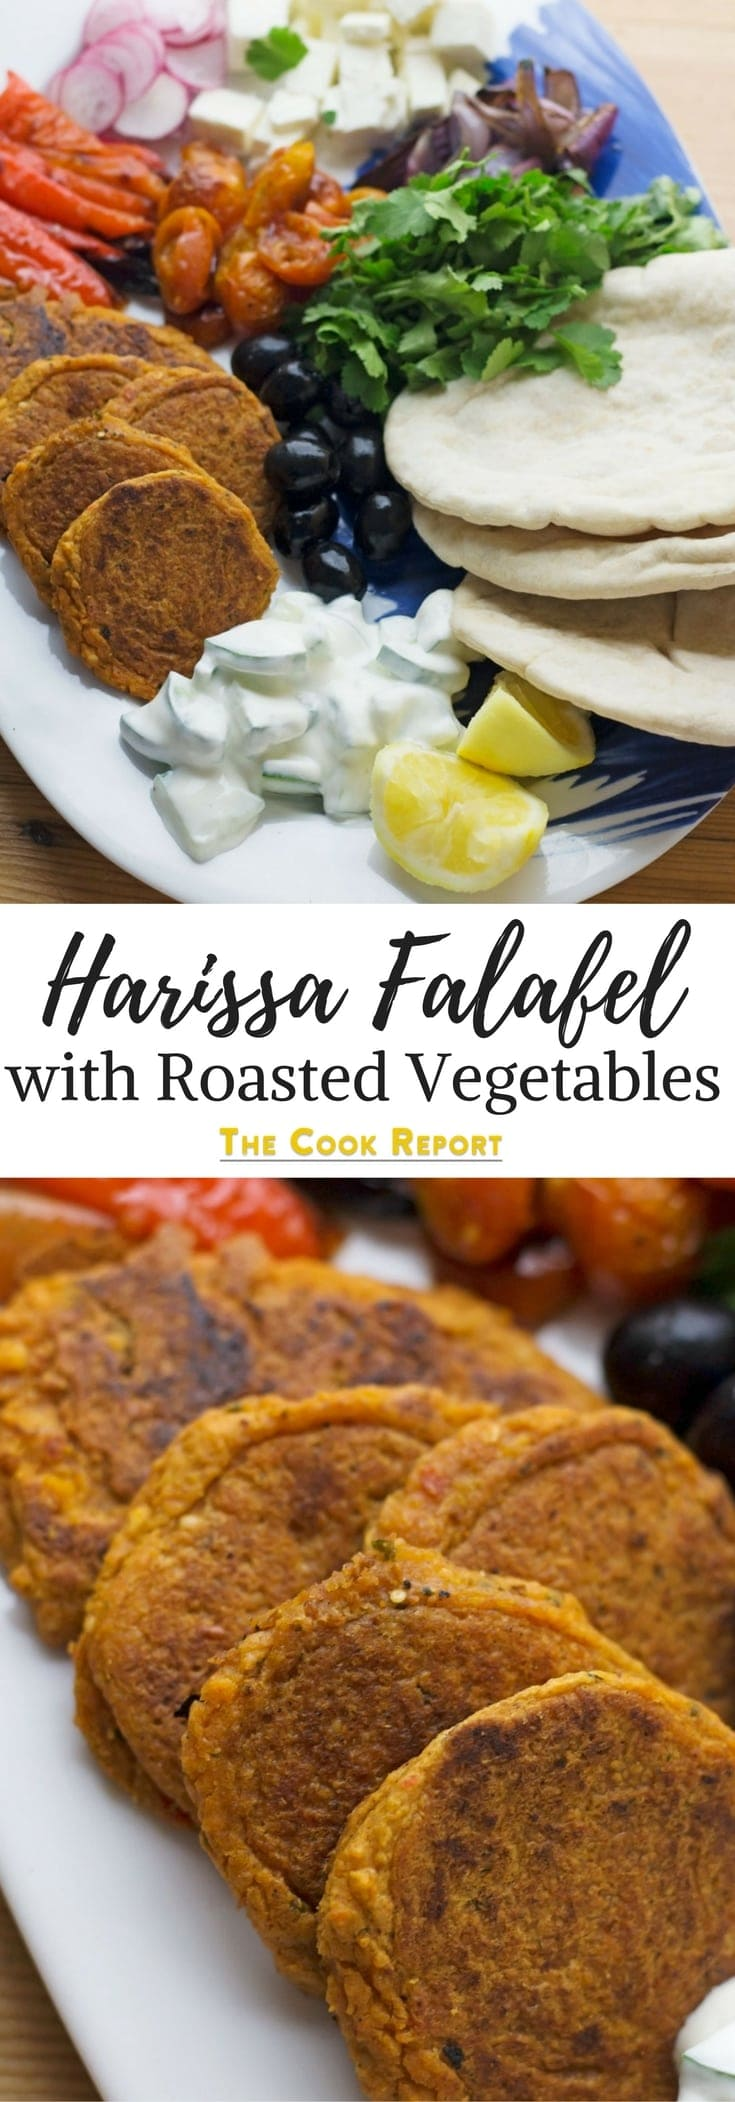 This harissa falafel recipe is spiced with rose harissa & aleppo chilli flakes. Serve with roasted vegetables & cucumber yoghurt for a delicious meal!